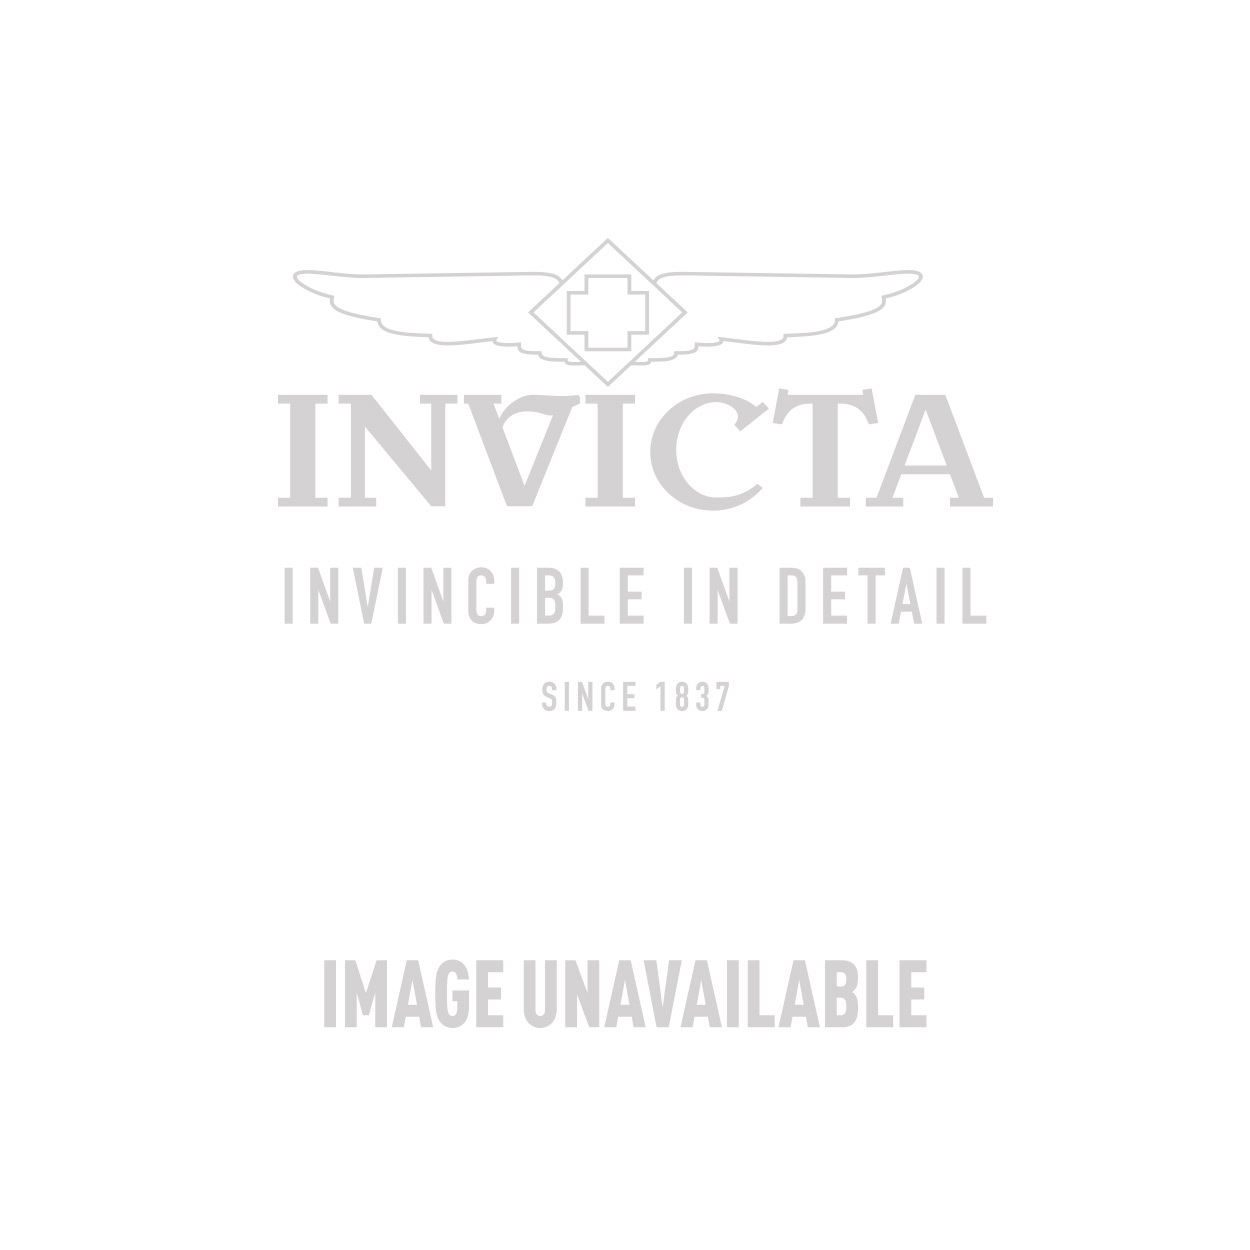 Invicta Reserve Swiss Made Quartz Watch - Black, Stainless Steel case with Steel, Black tone Stainless Steel band - Model 13715